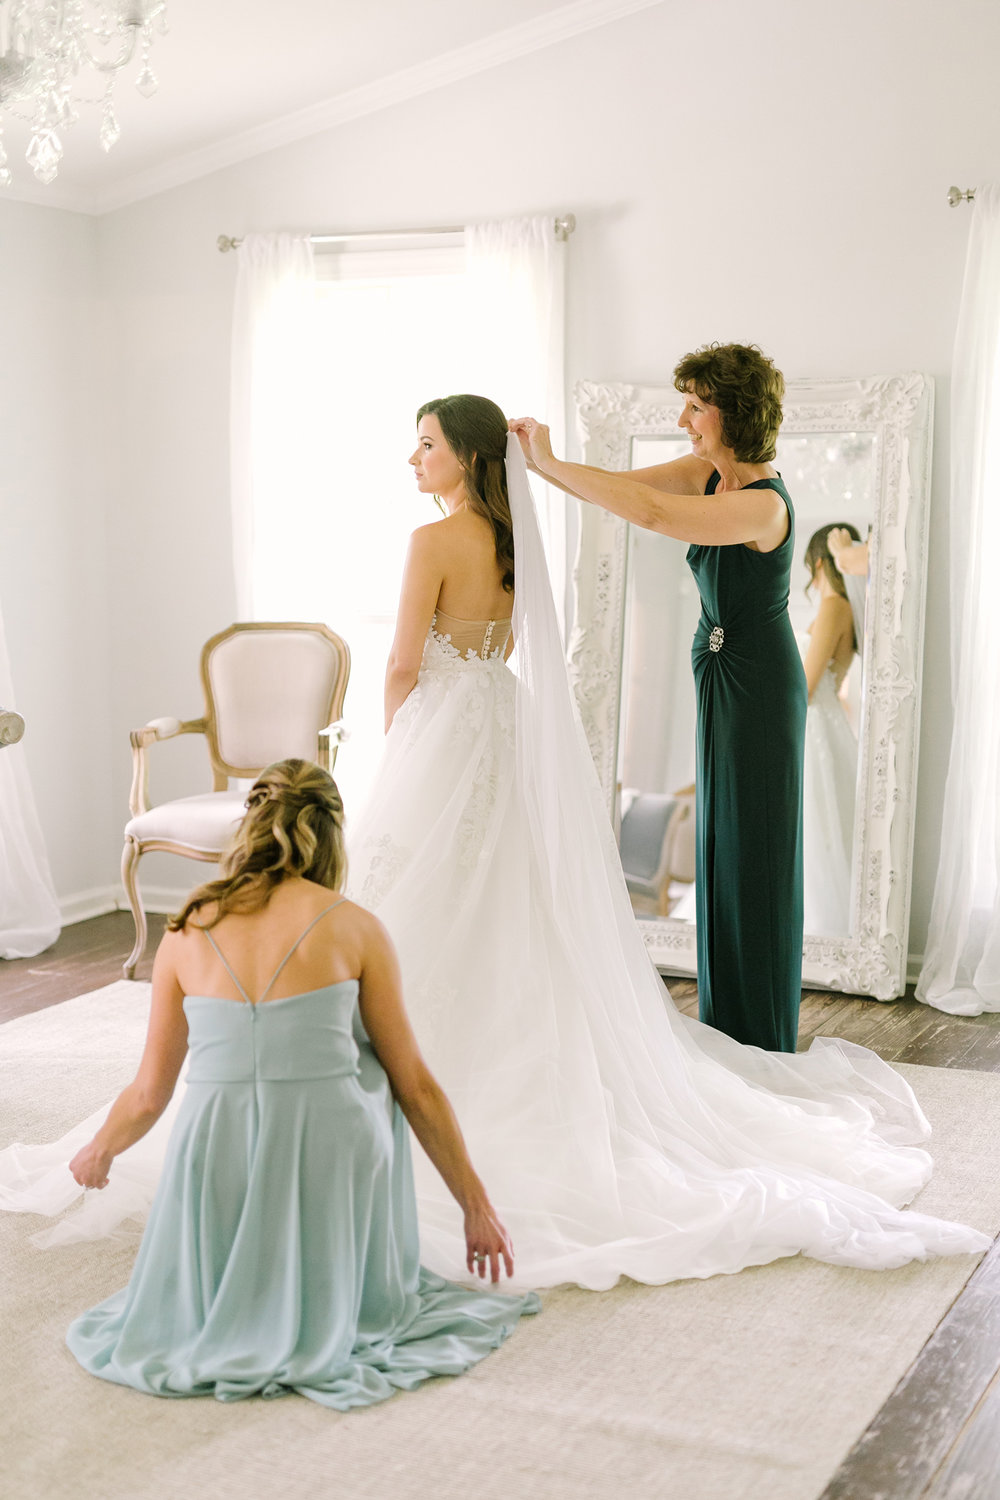 Austin_Wedding_Photographer_Kimberly_Brooke_Photographic_074.jpg